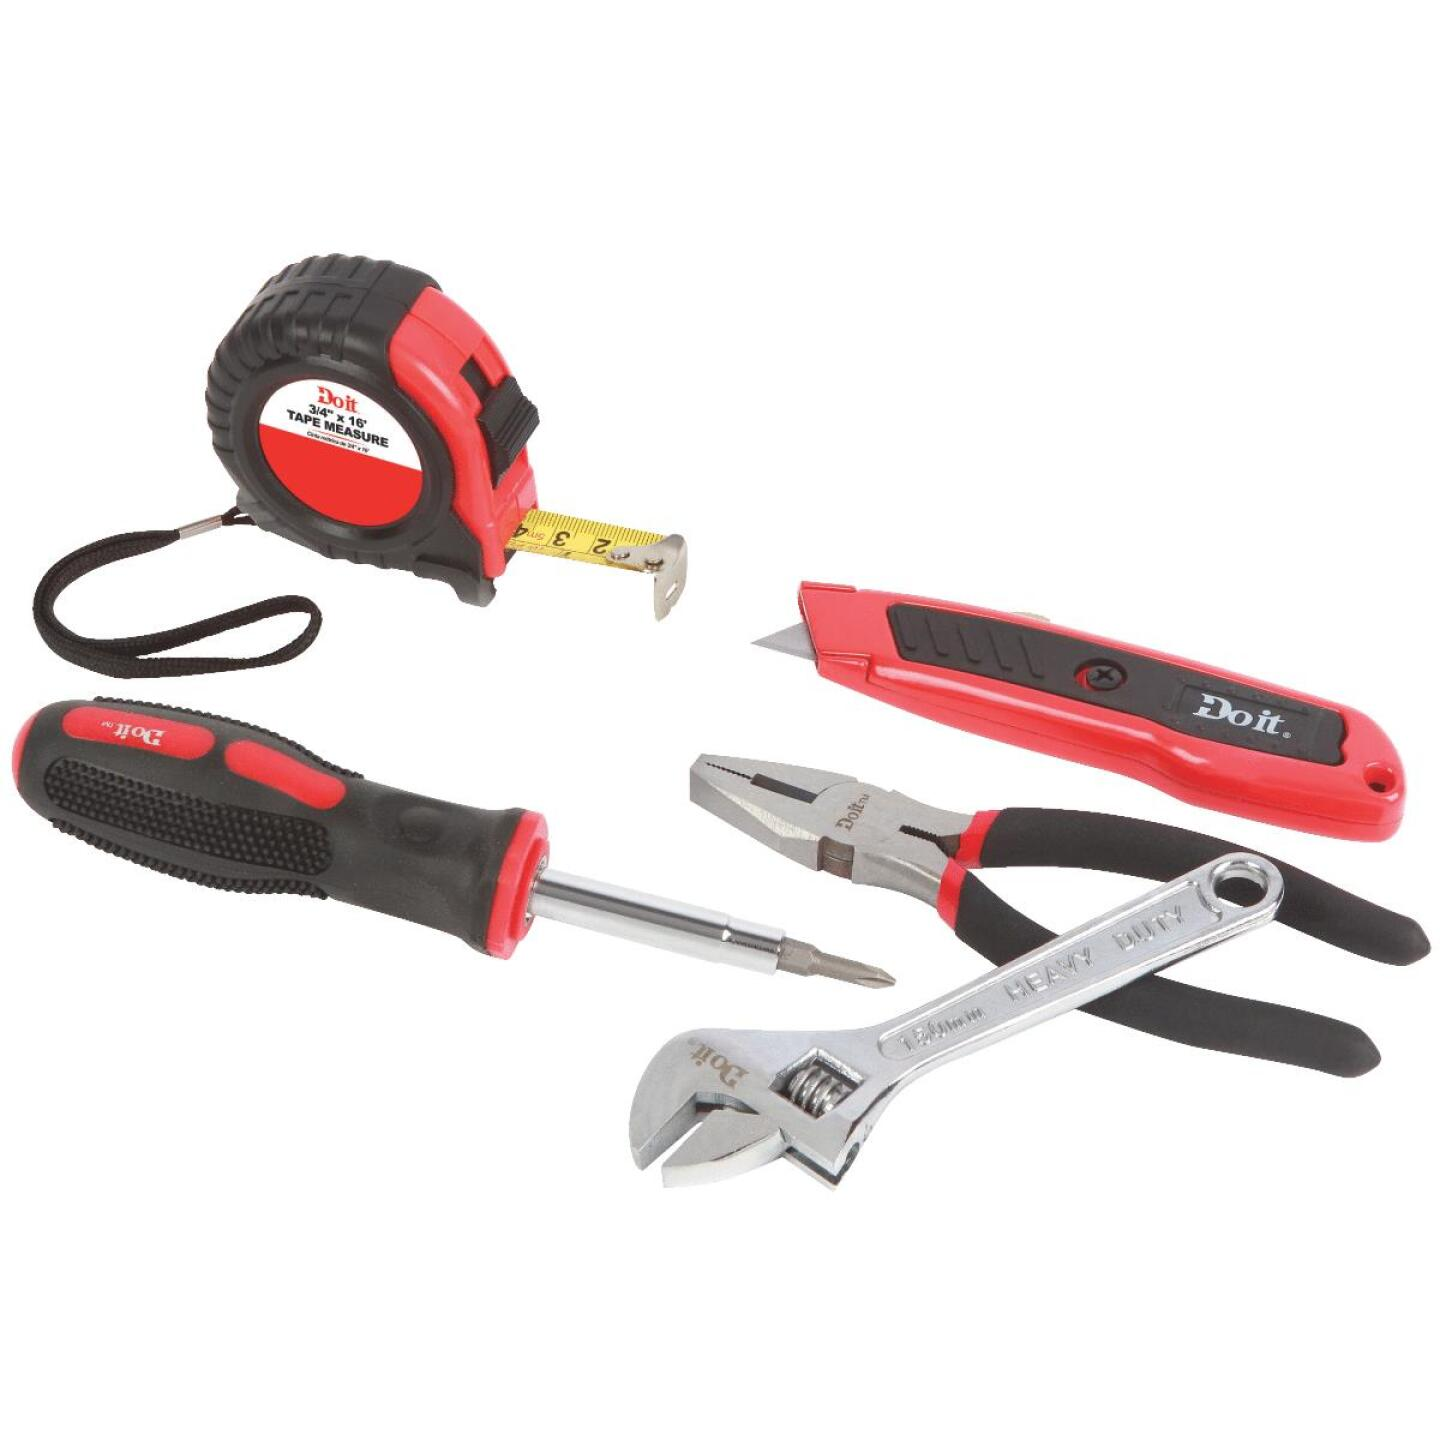 Do it Assorted Tools Home Tool Set (5-Piece) Image 1